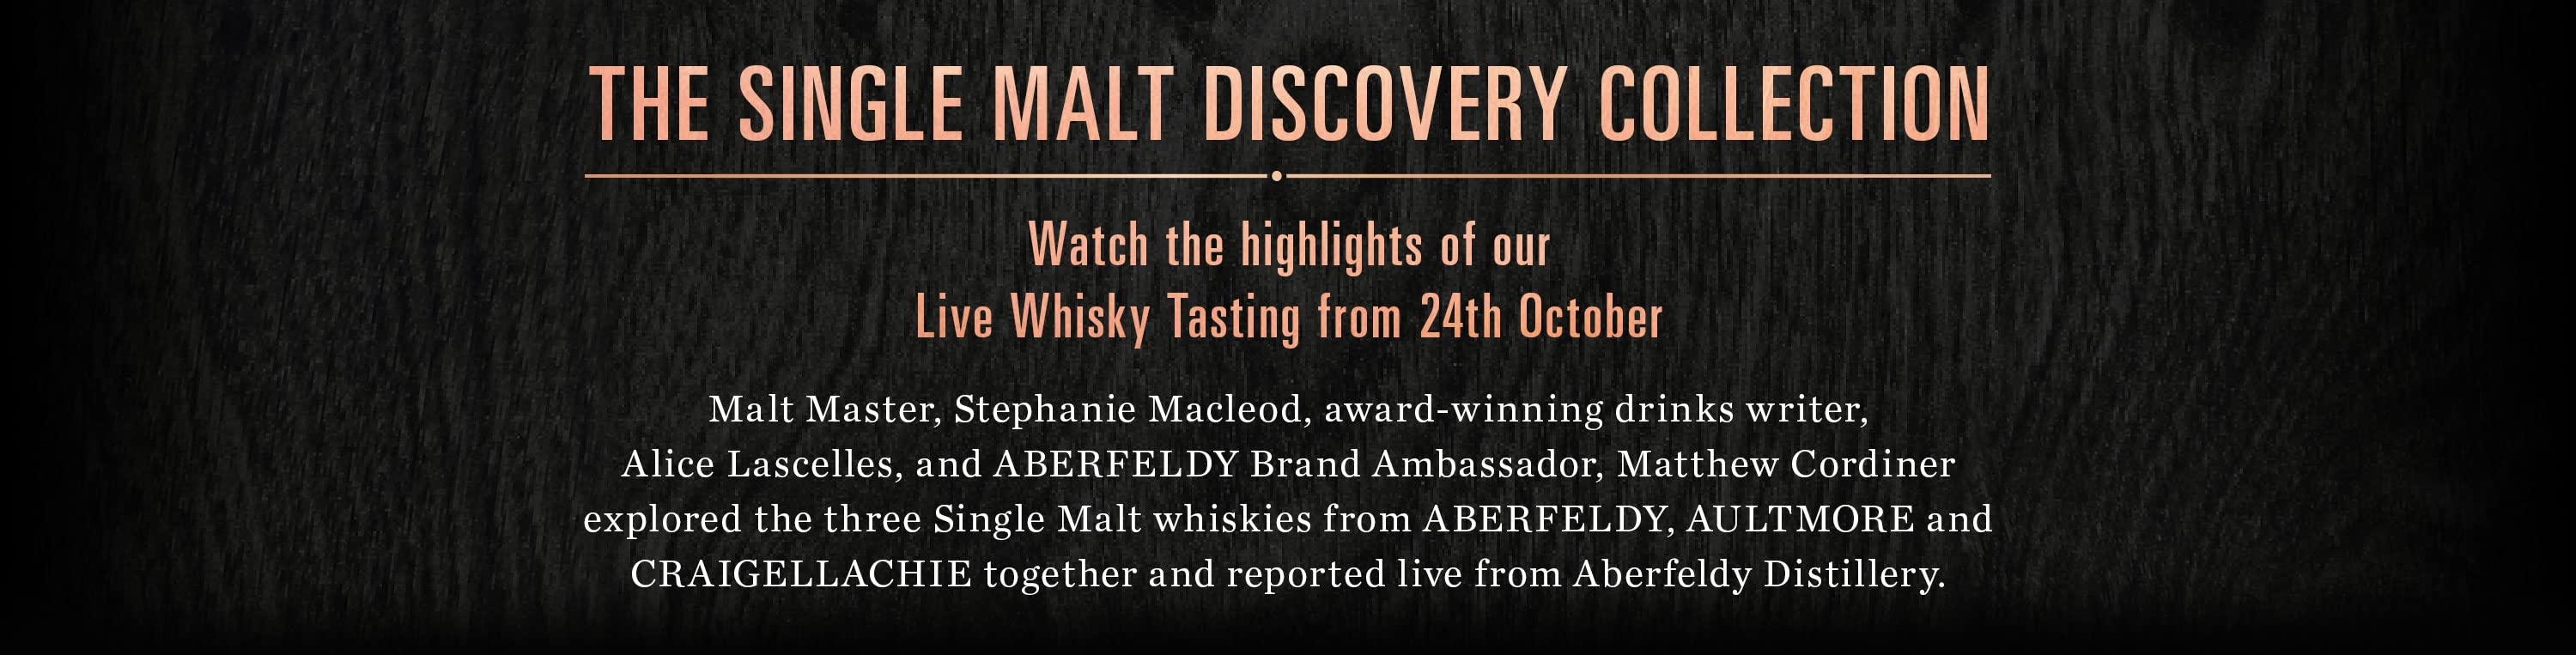 The Single Malt Discovery Collection Watch the highlights of ourLive Whisky Tasting from 24th October Malt Master, Stephanie Macleod, award-winning drinks writer,Alice Lascelles, and ABERFELDY Brand Ambassador, Matthew Cordinerexplored the three Single Malt whiskies from ABERFELDY, AULTMORE and CRAIGELLACHIE together and reported live from Aberfeldy Distillery.